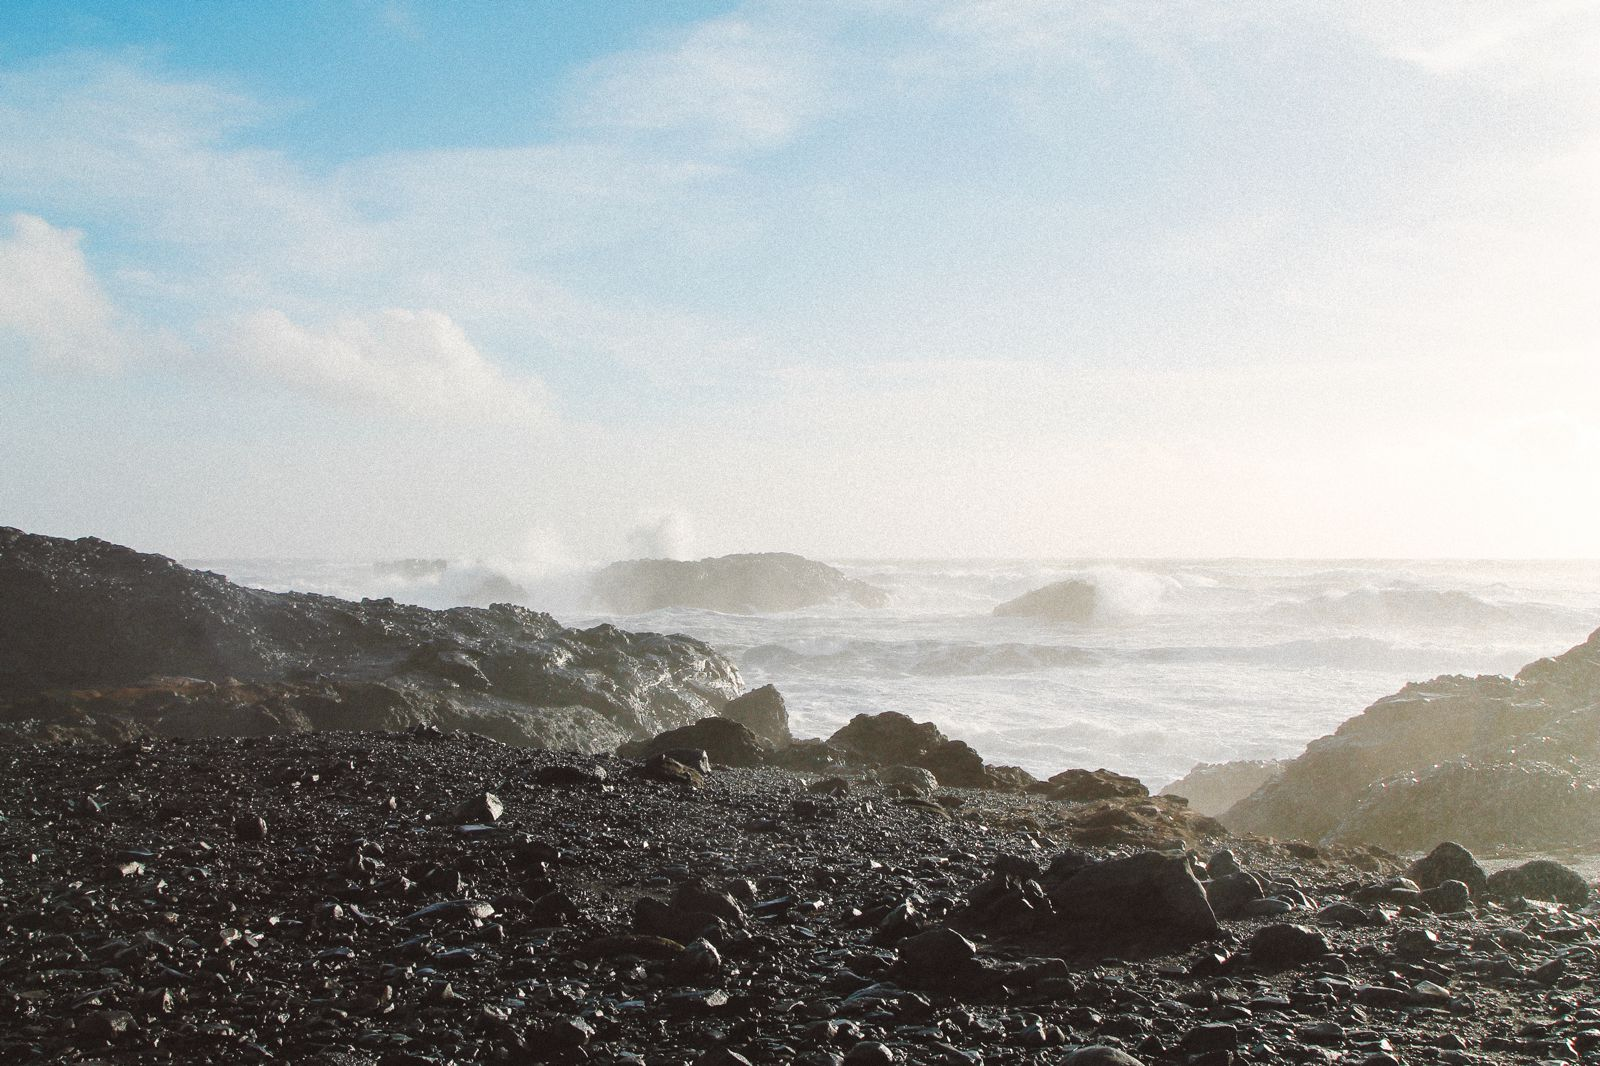 Dyrhólaey, Iceland - A Photo Diary... (7)